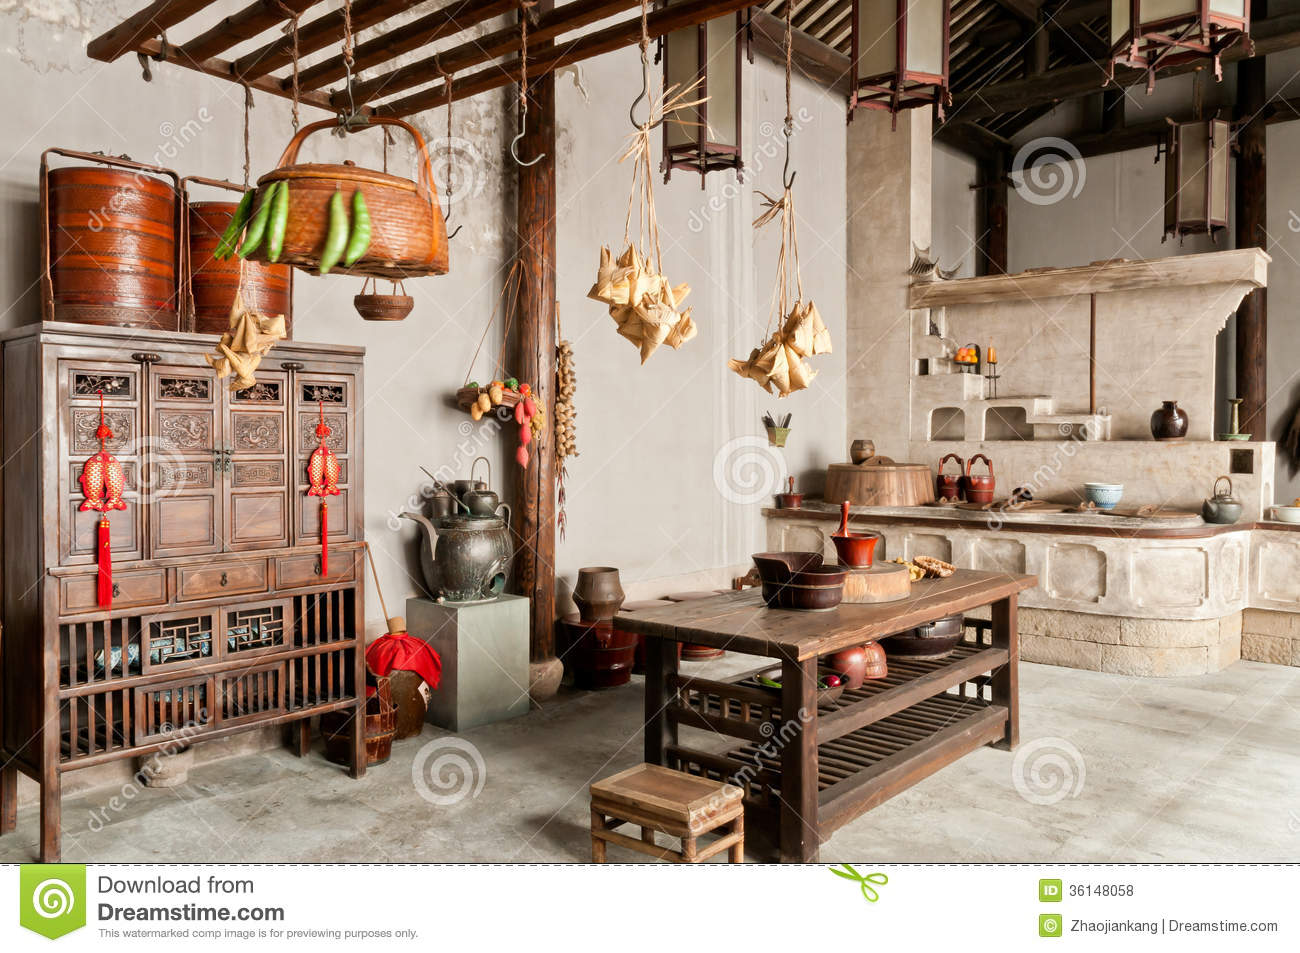 Good China Old Kitchen Furnishings